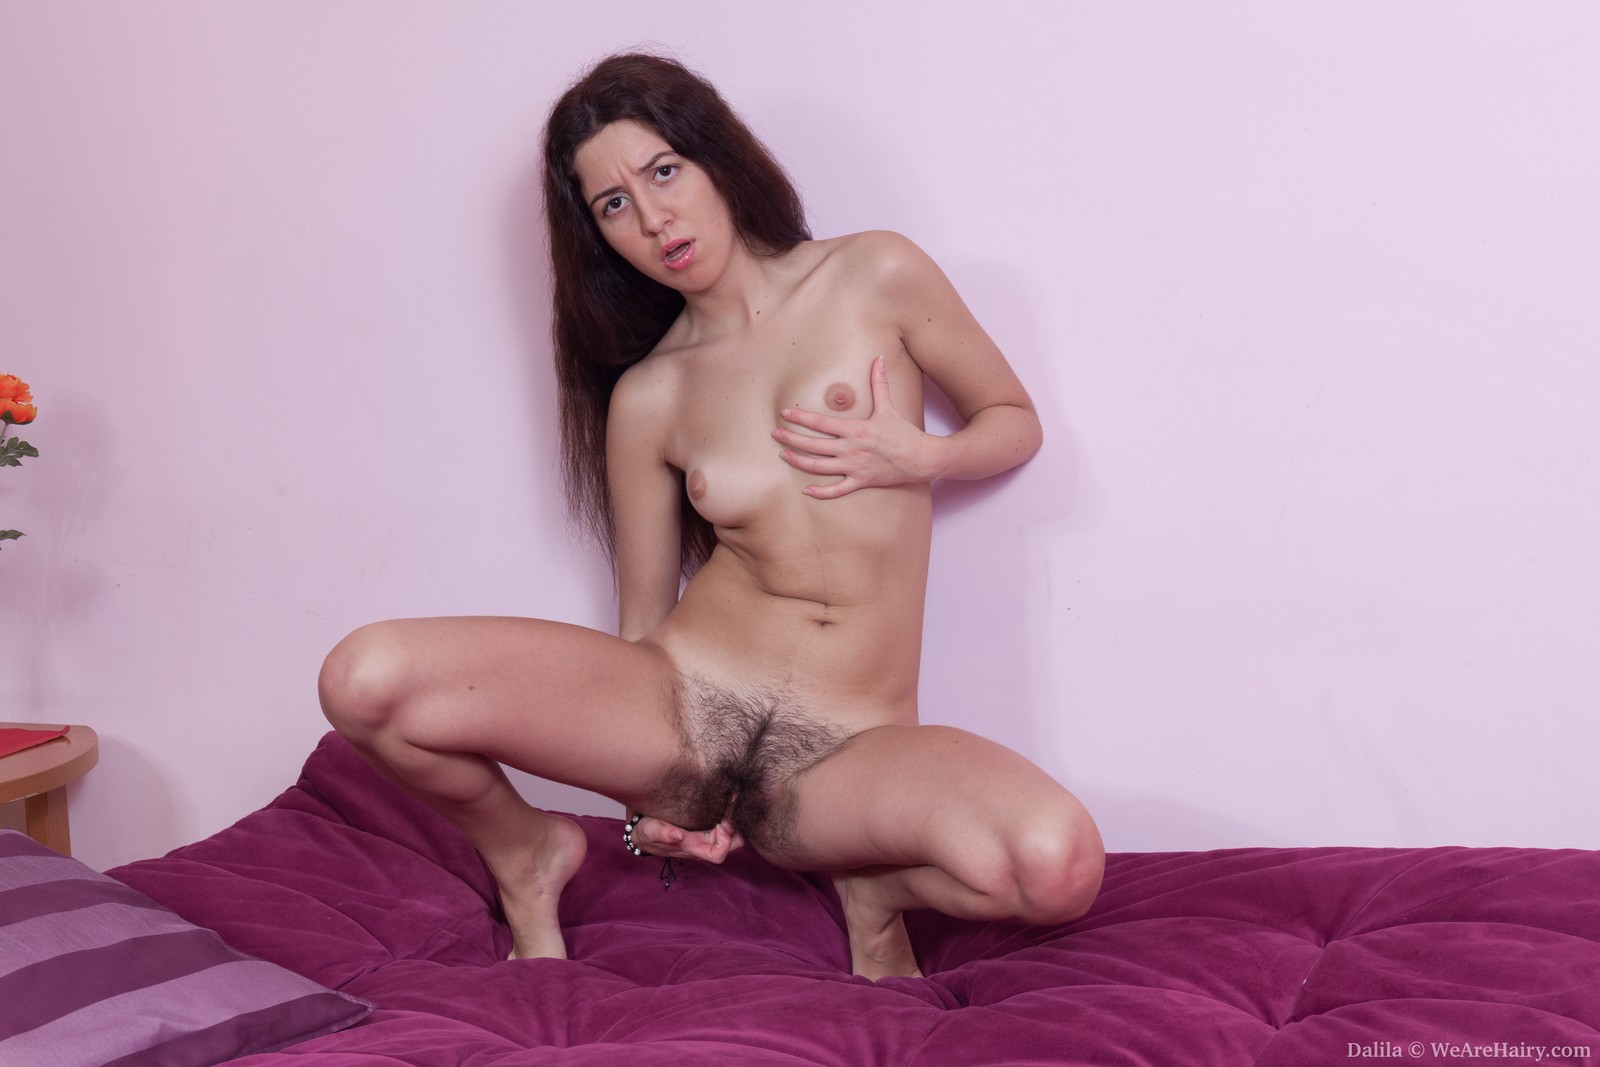 dalila-masturbates-on-her-purple-sofa12.jpg